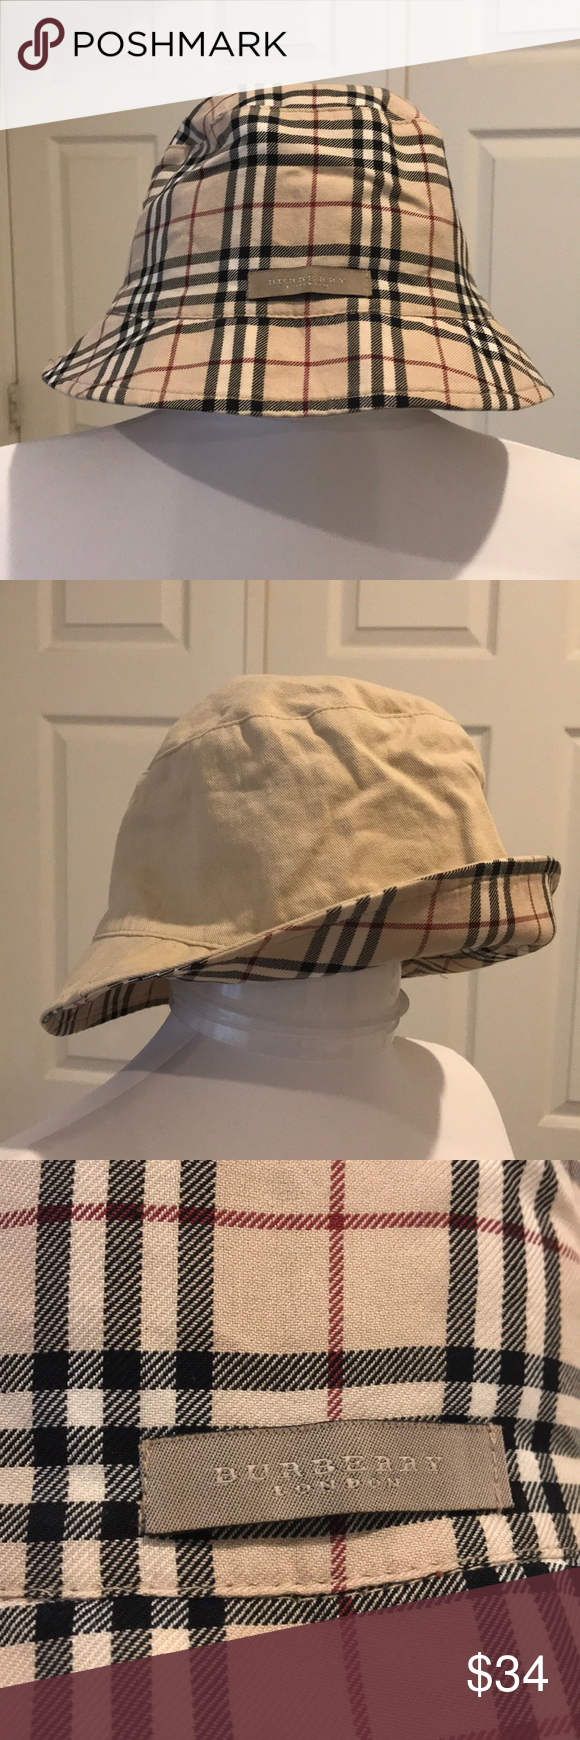 aa5328b4200 Authentic Burberry Hat NWOT 100% Authentic Reversible Burberry Summer Hat.  Solid khaki on one side